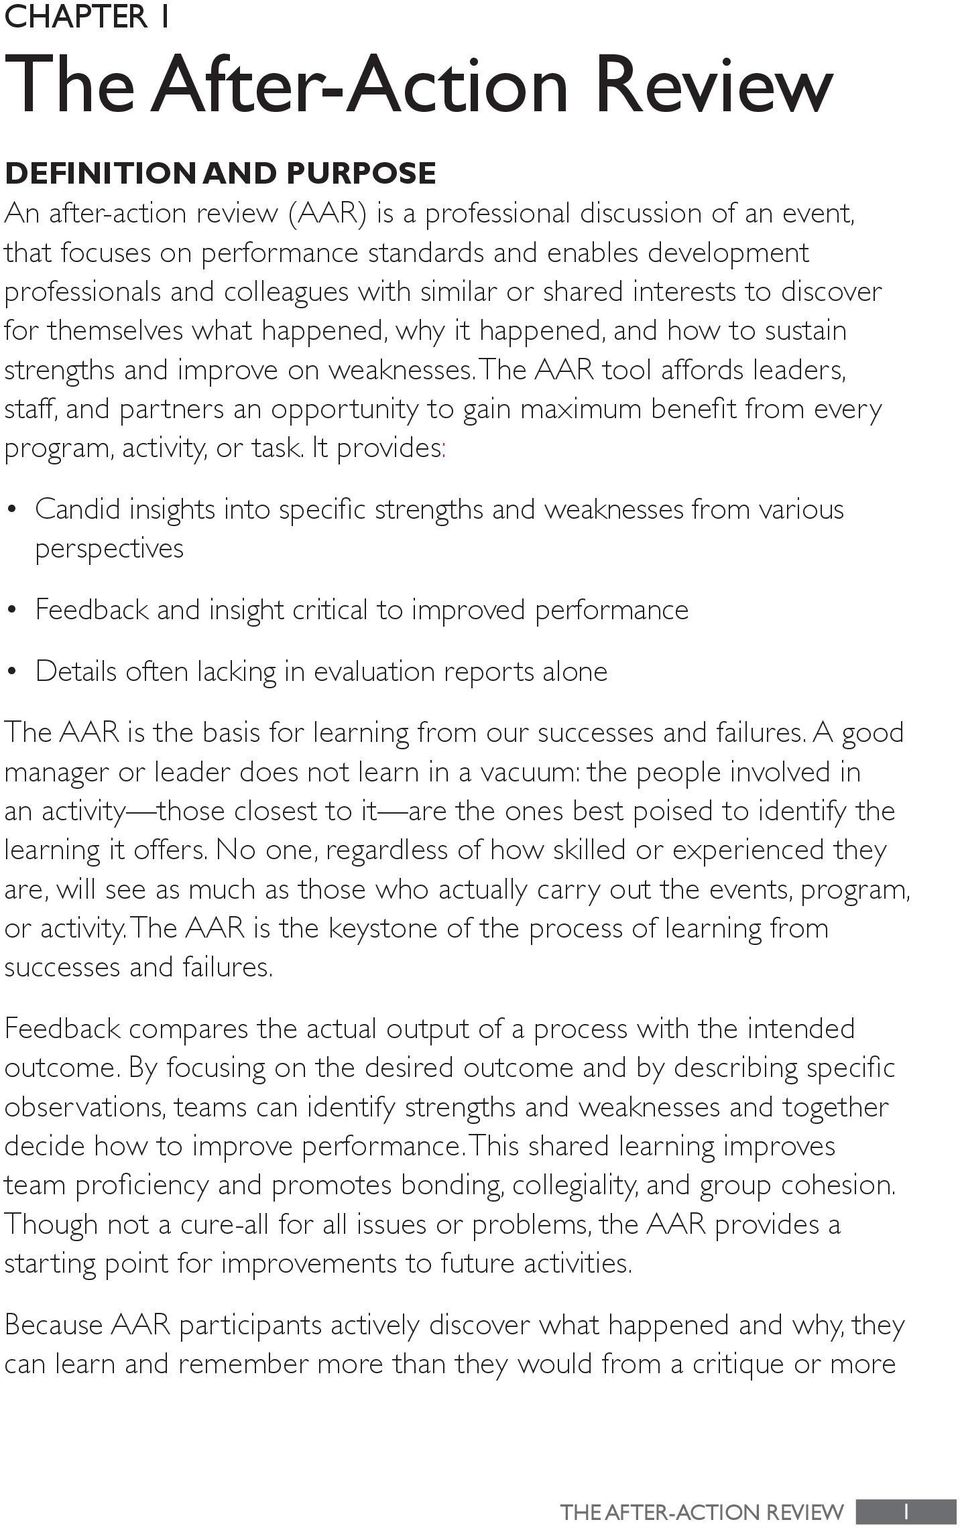 the AAR tool affords leaders, staff, and par tners an opportunity to gain maximum benefit from every program, activity, or task.